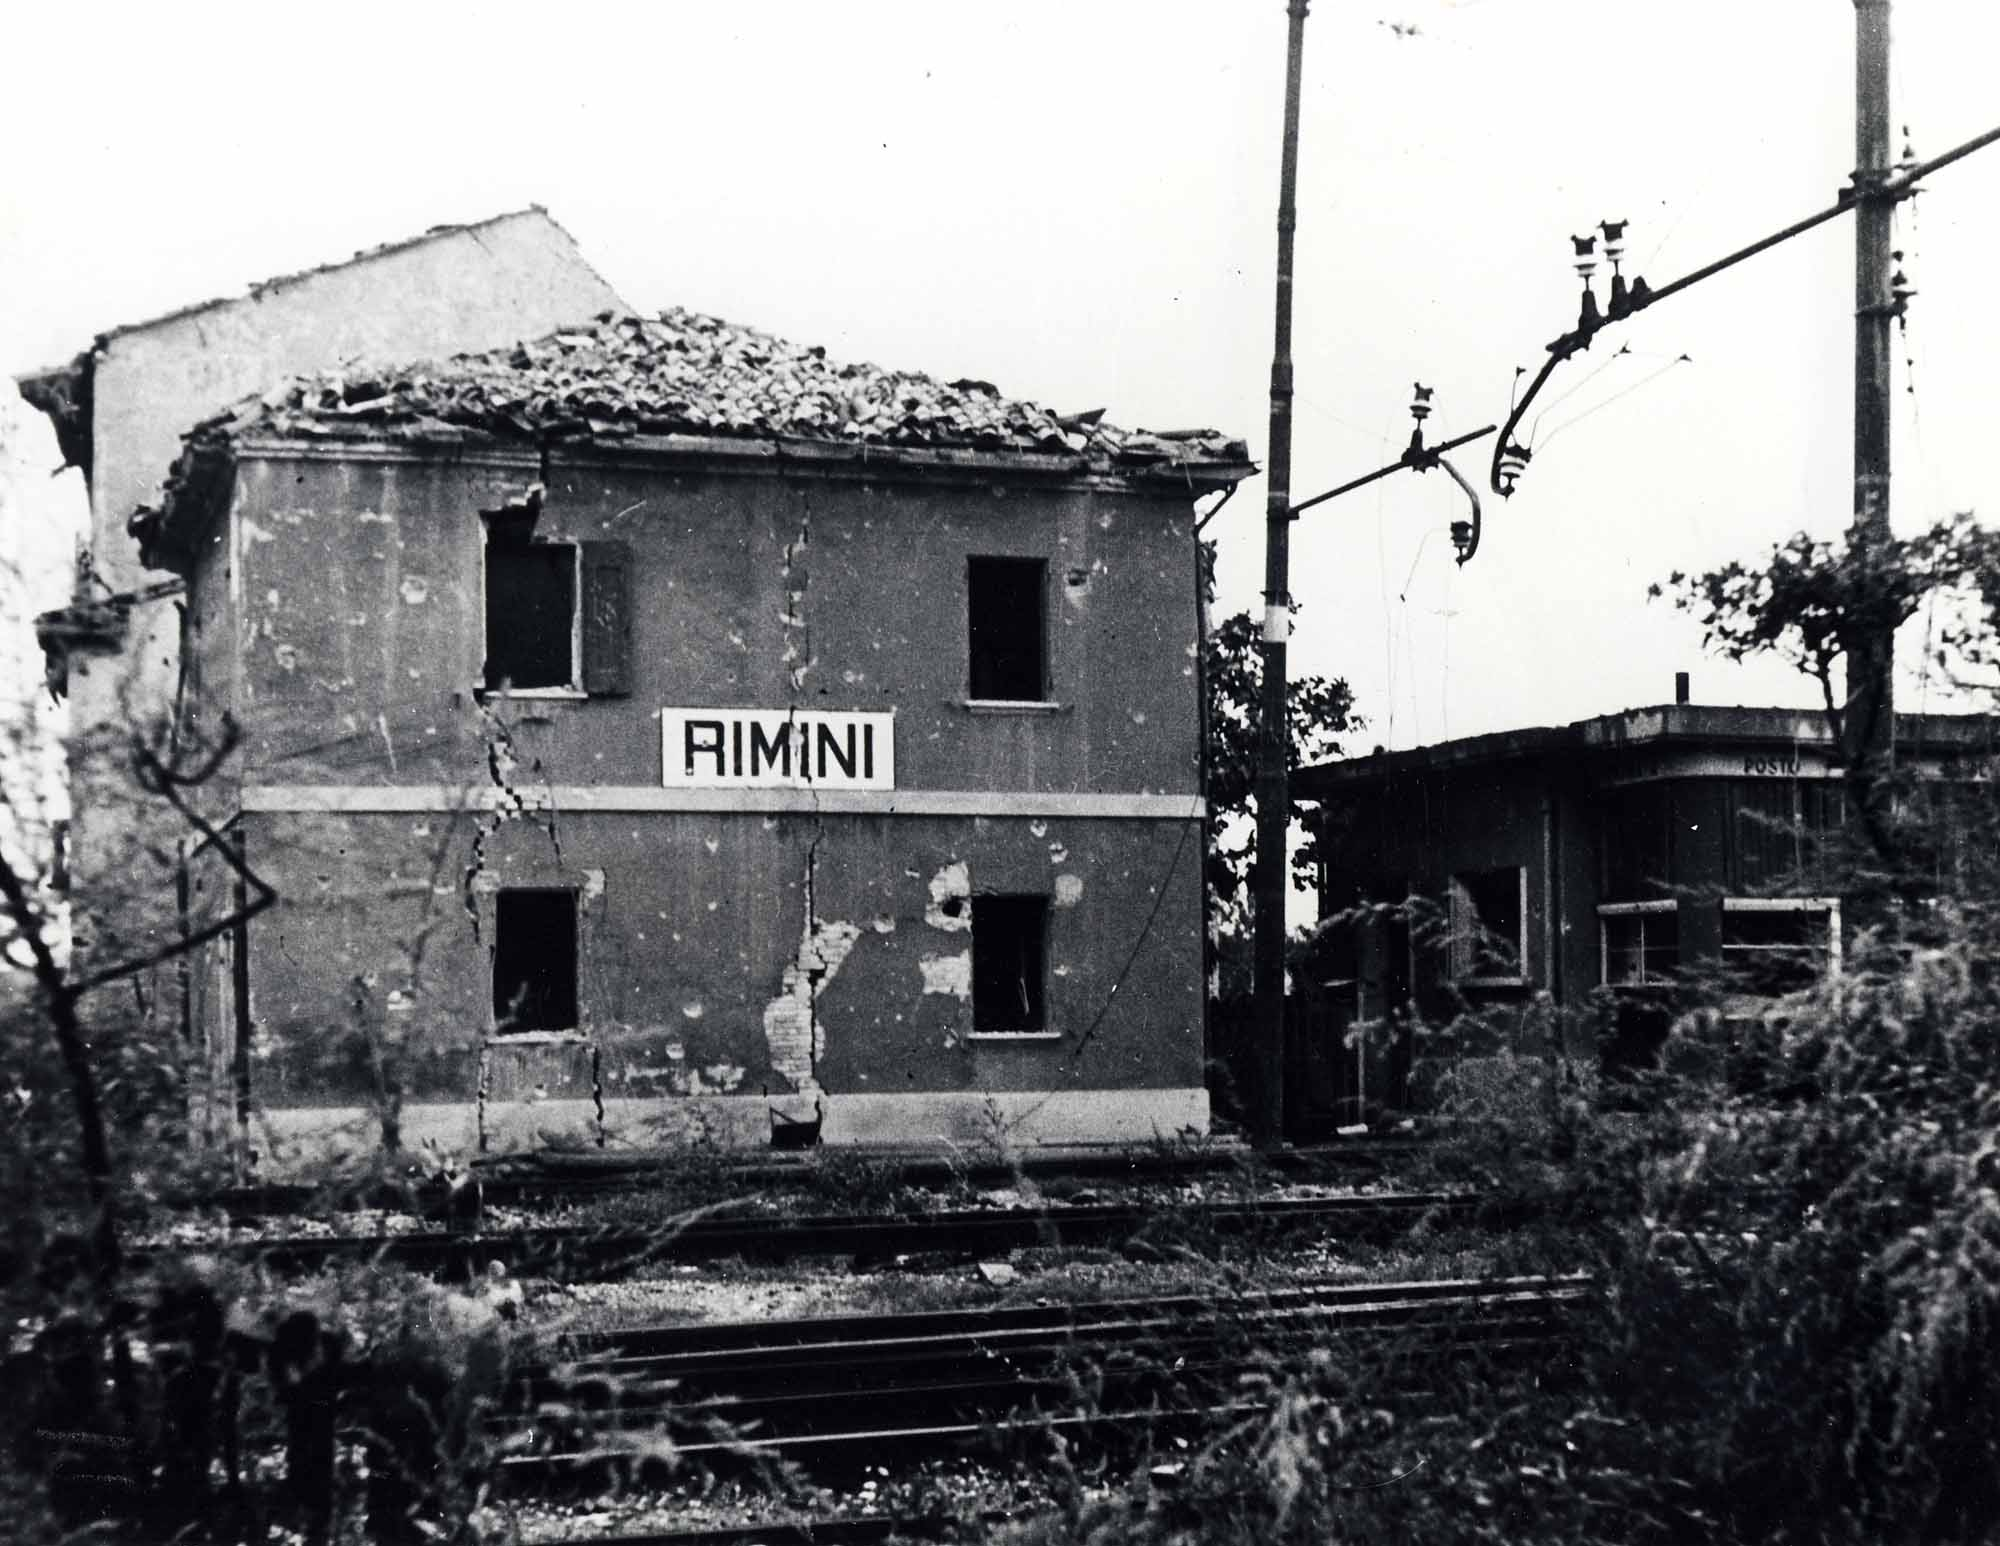 Battle of Rimini Italy